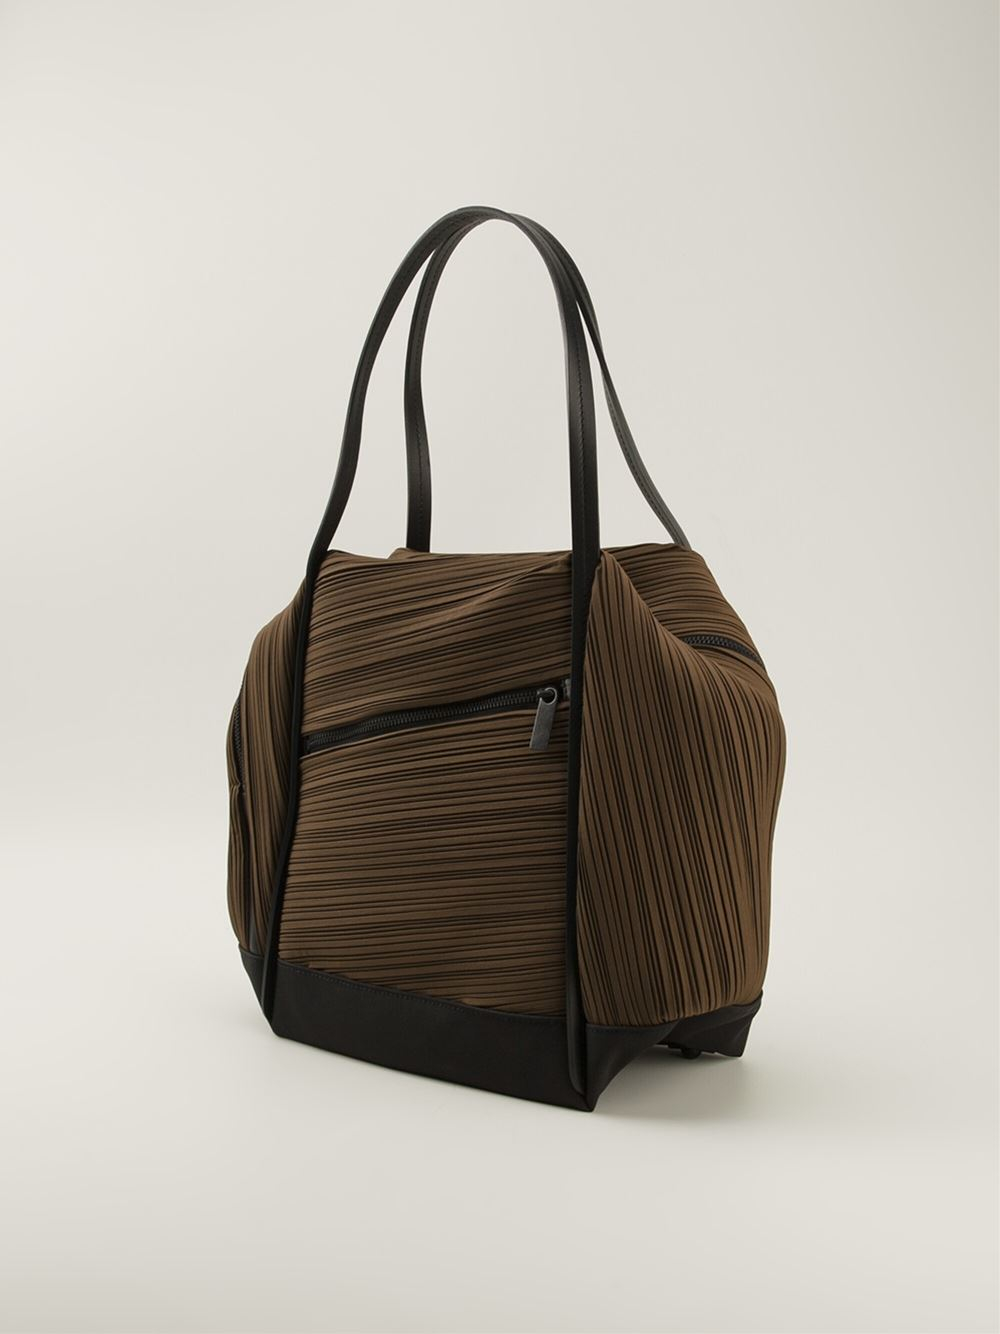 Lyst - Pleats Please Issey Miyake Pleated Tote Bag in Brown c4354f779d